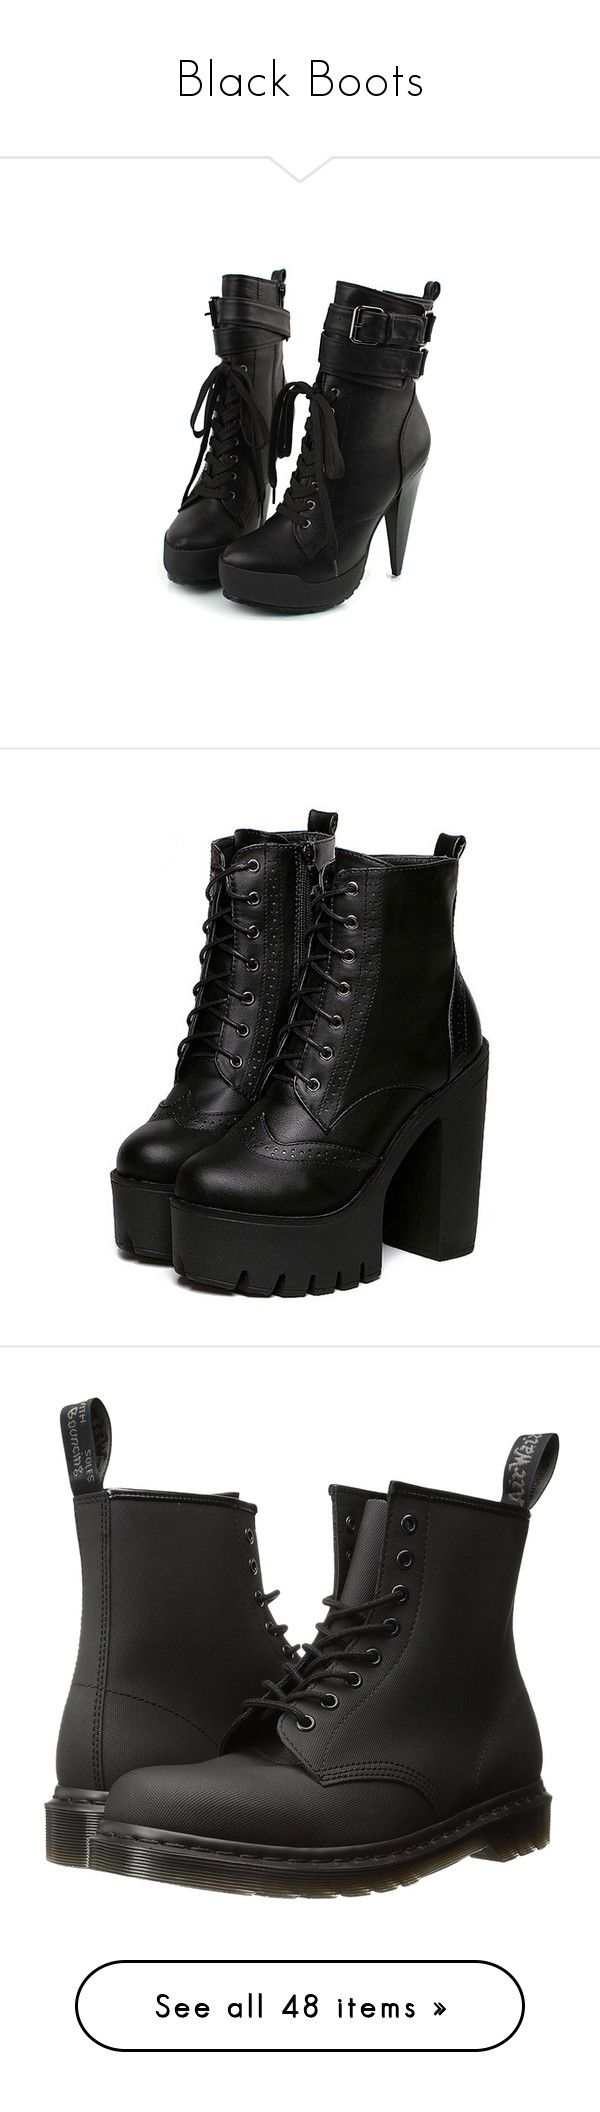 """Black Boots"" by sheisjulia ❤ liked on Polyvore featuring shoes, boots, heels, sapatos, zapatos, women, spiked heel shoes, heeled boots, spiked boots and spiked shoes"